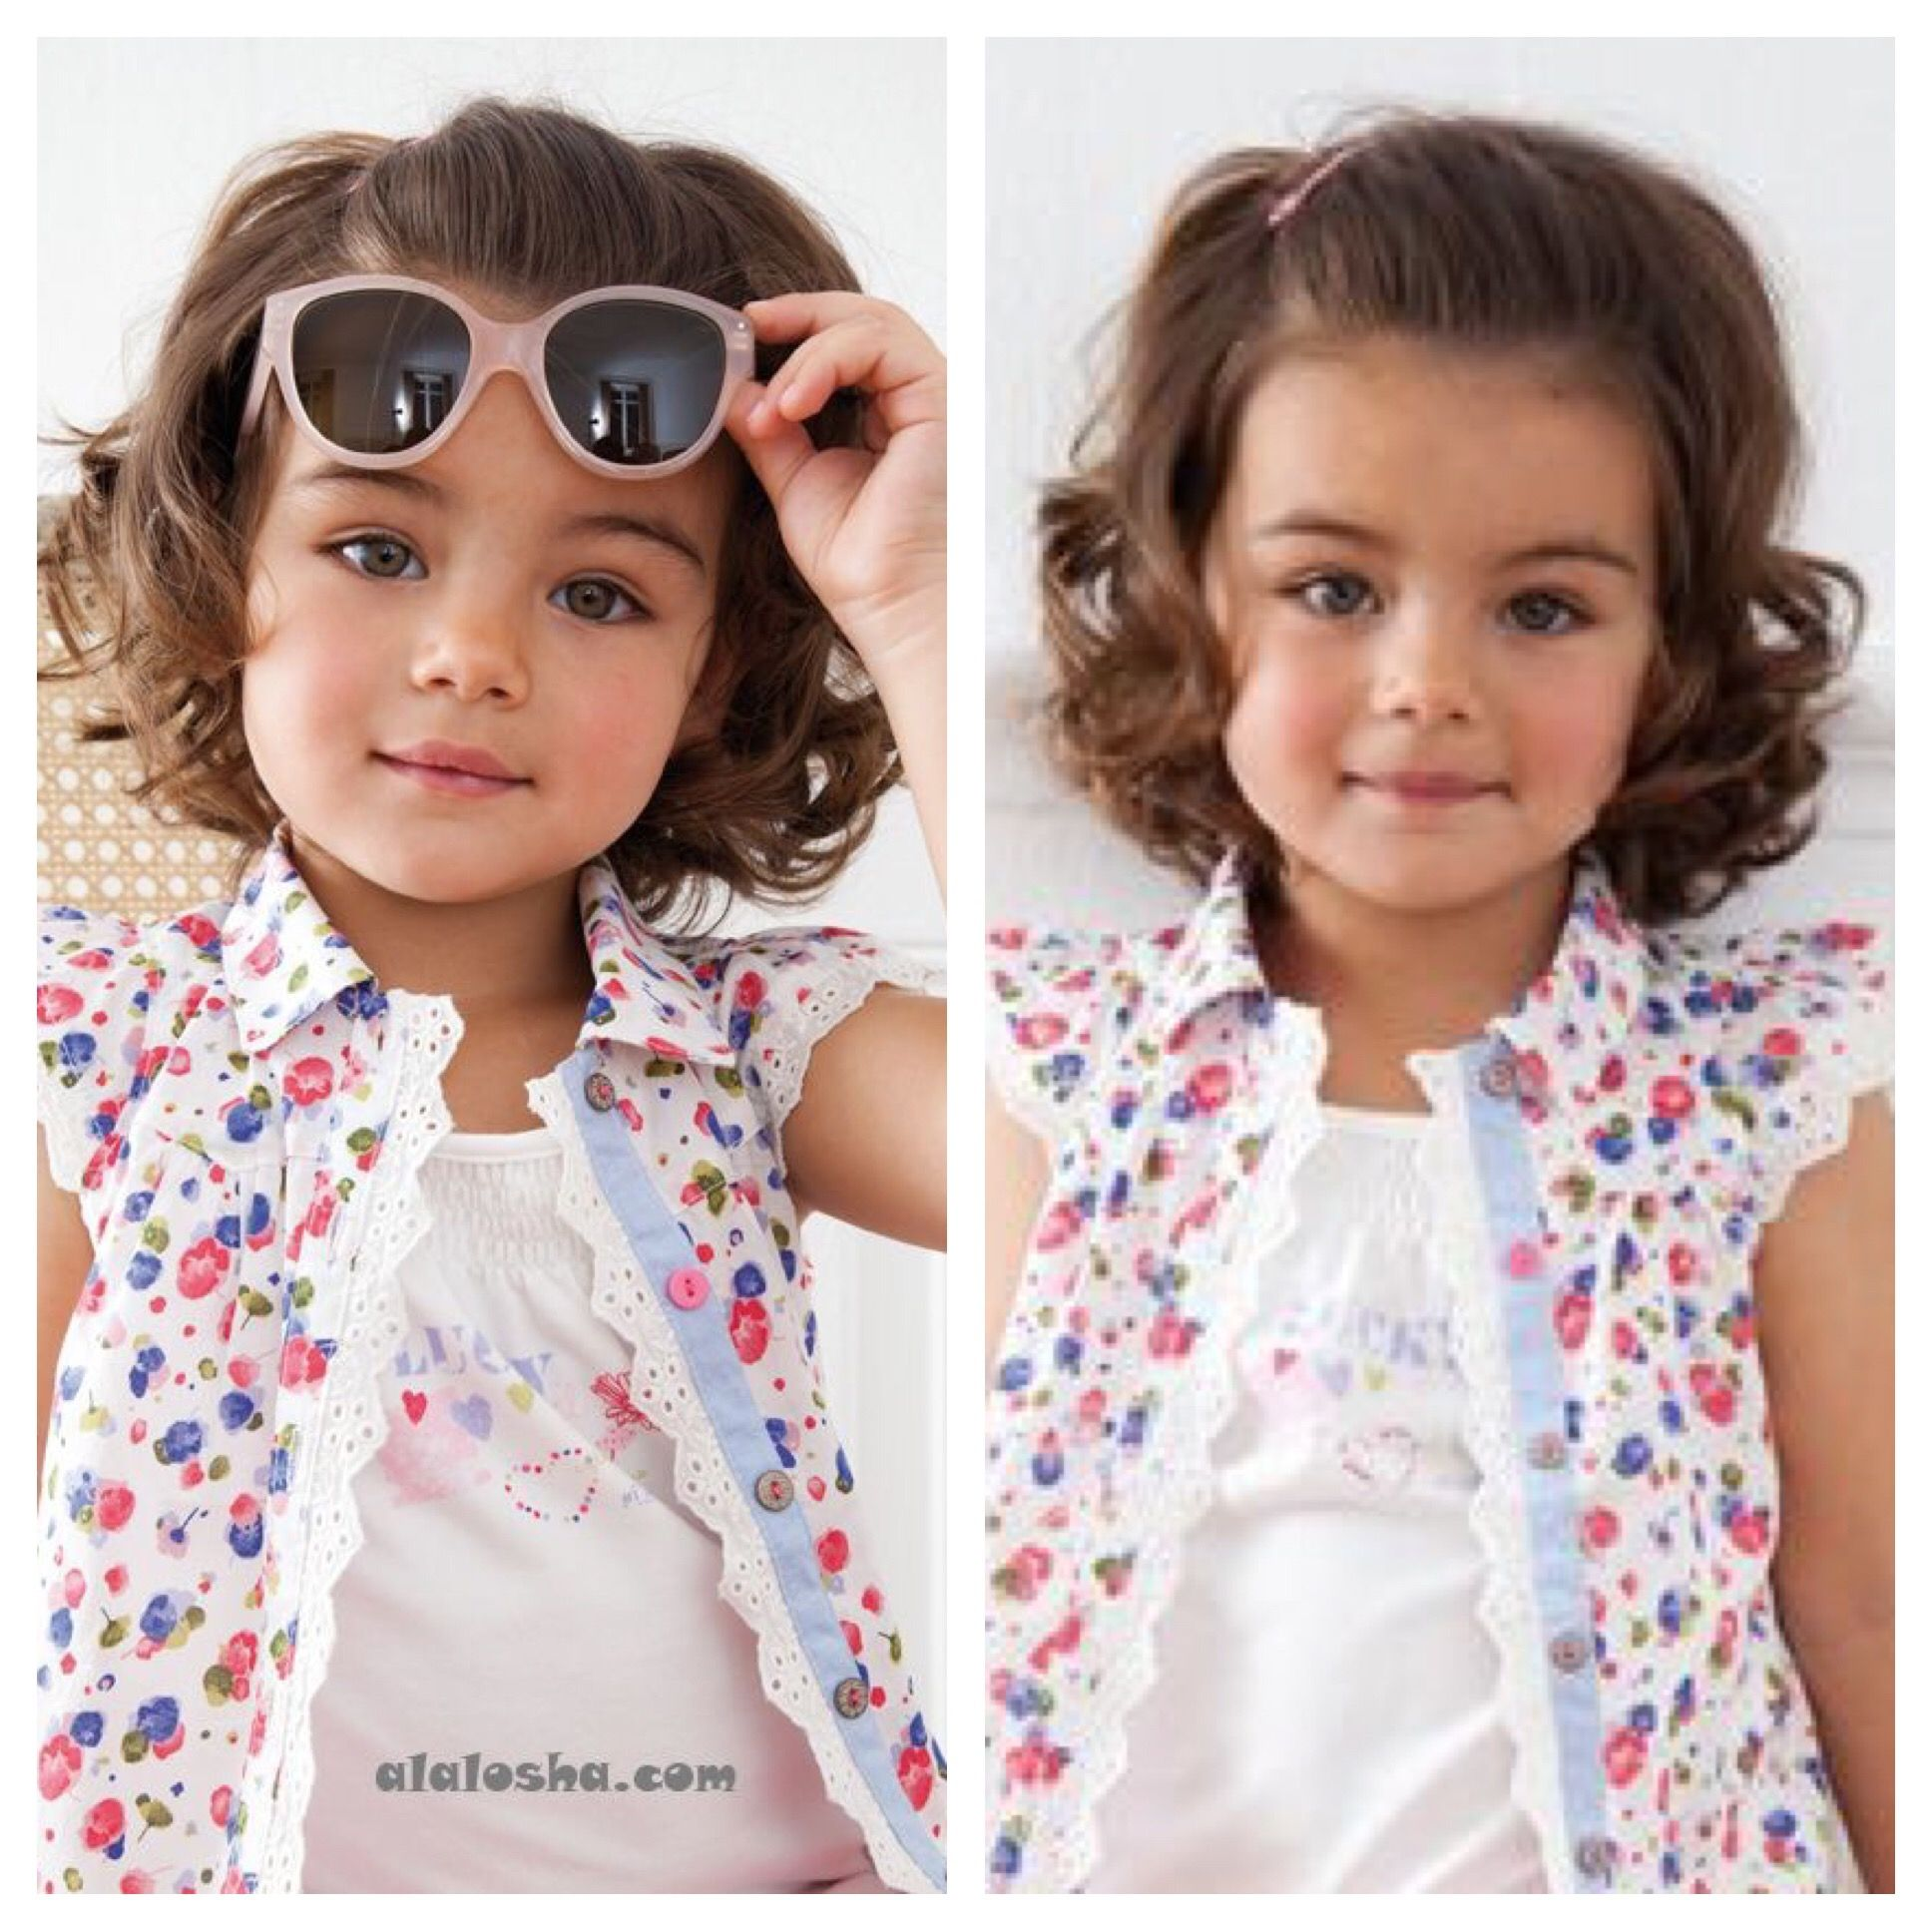 Haircut For Girls For Curly Hair